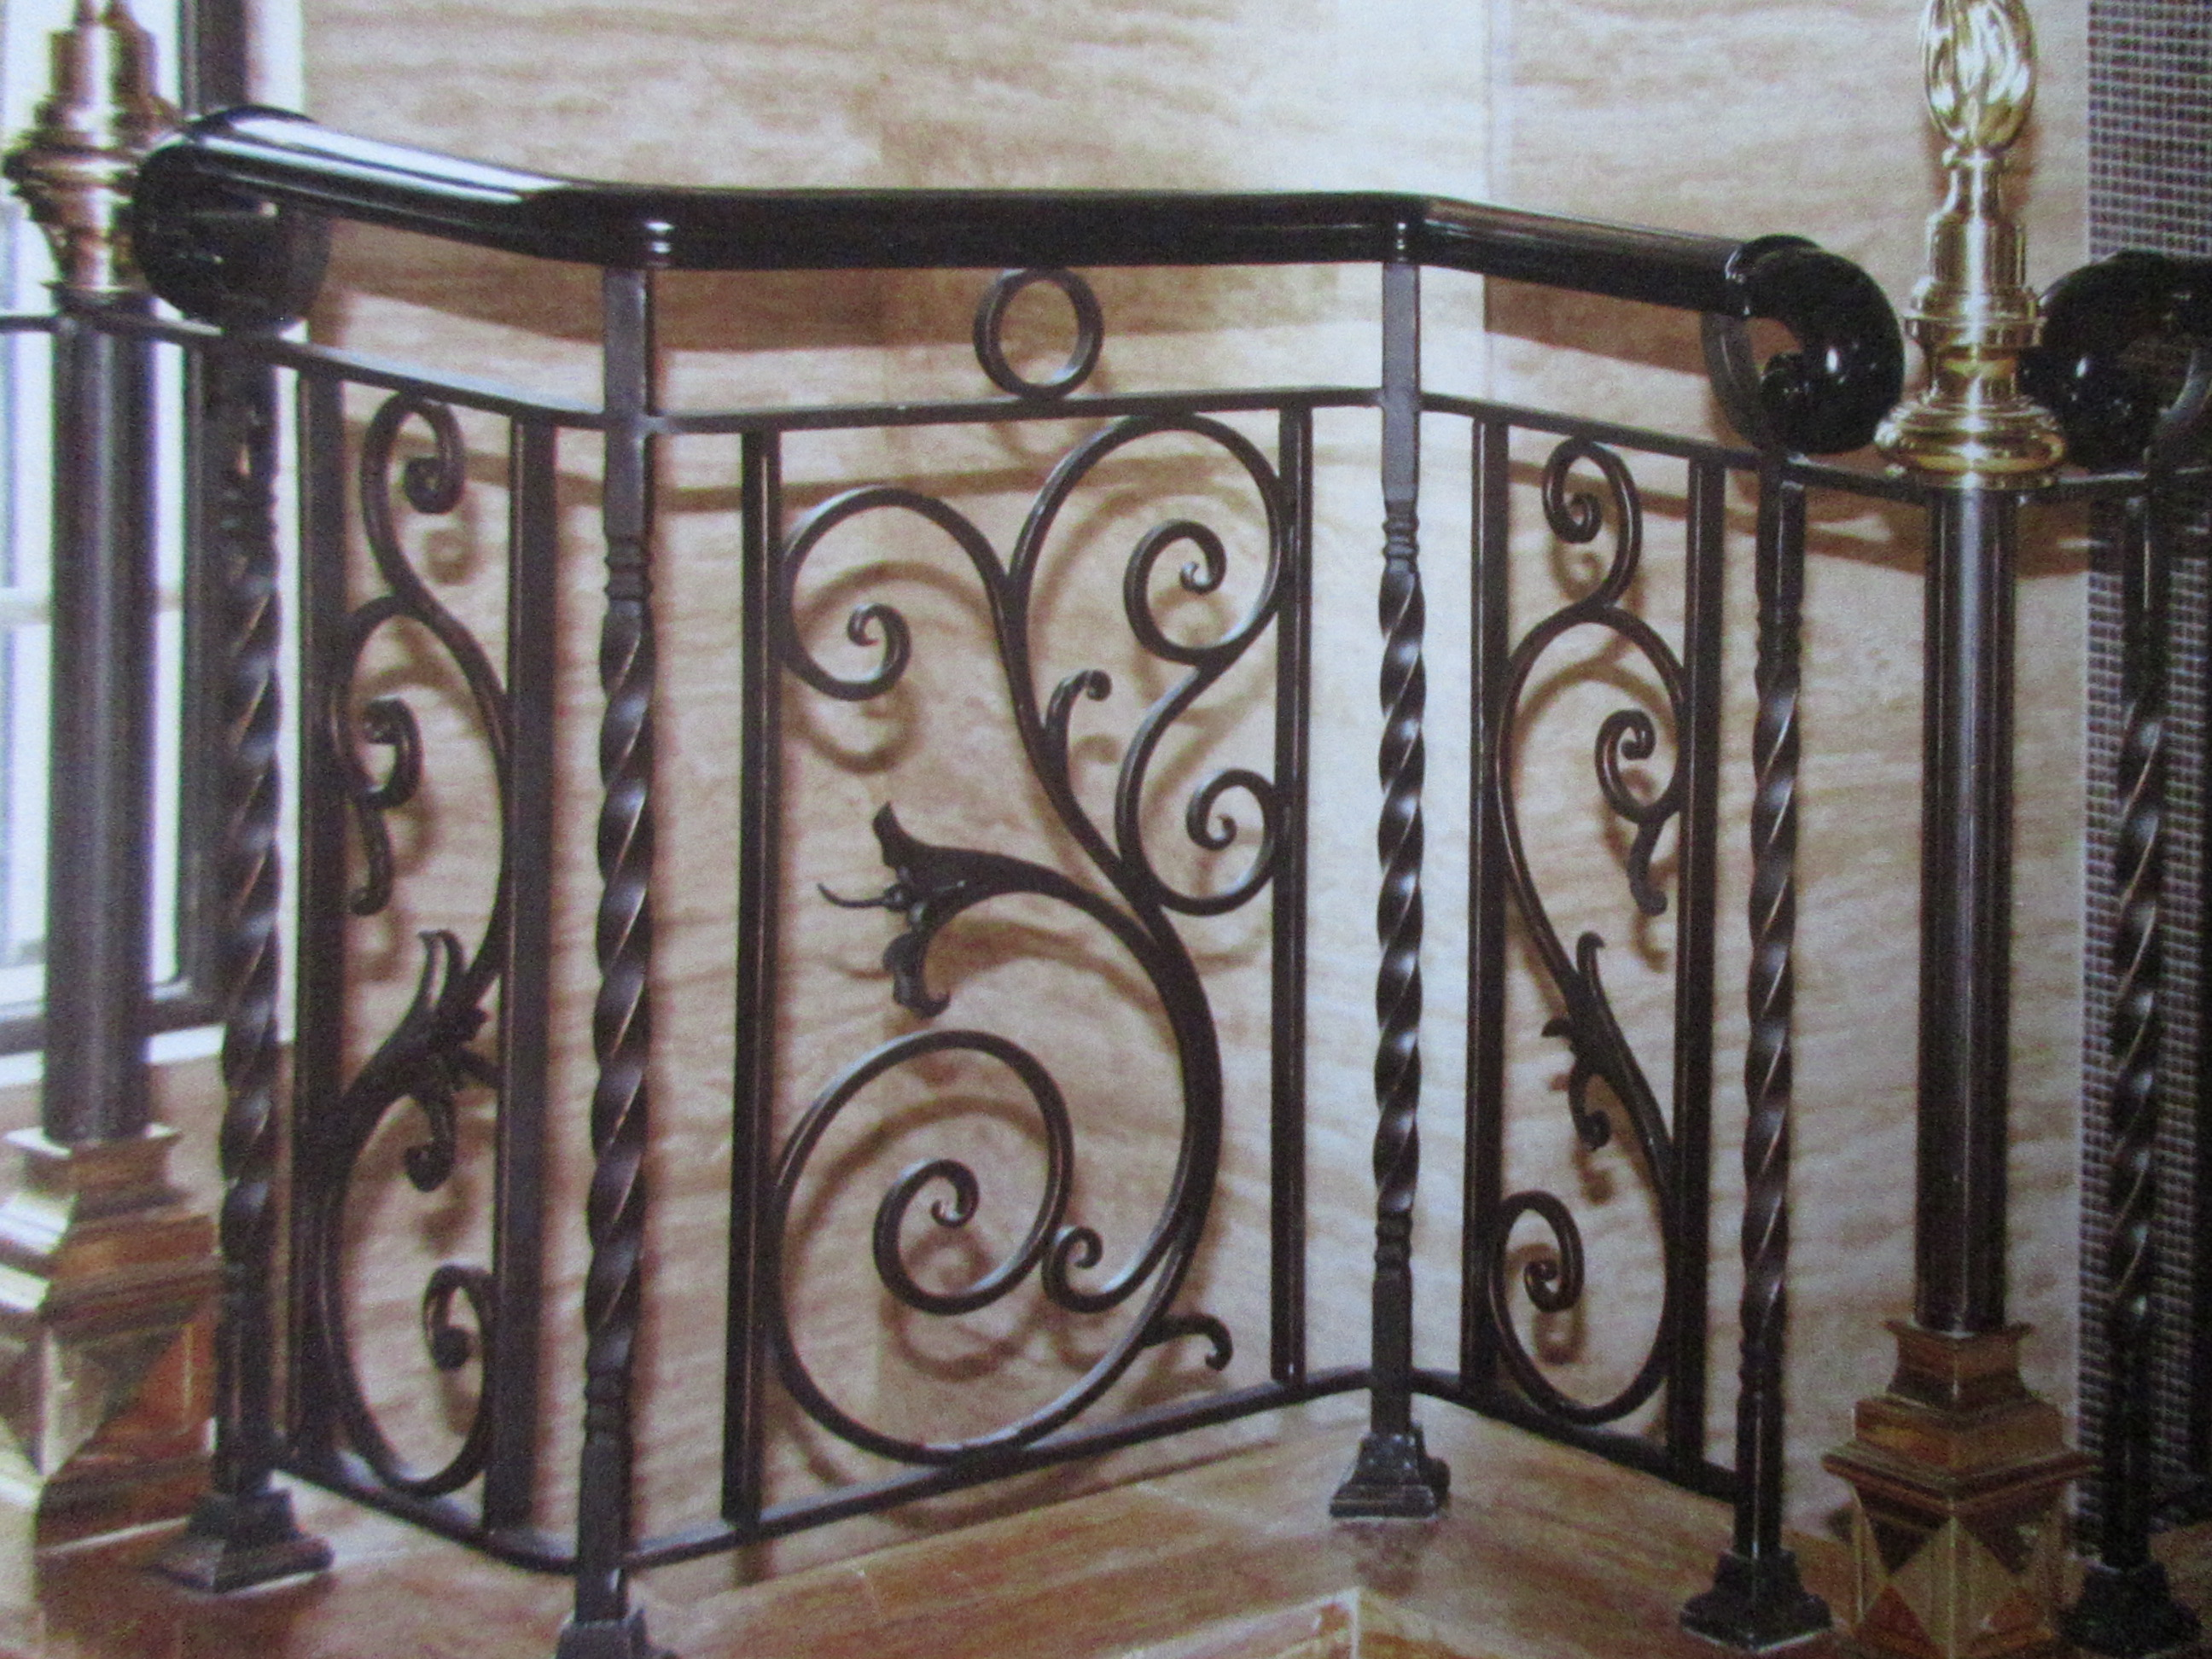 Hench Shanghai Top Quality Factory Made Wrought Iron Stair Railing   Wrought Iron Stair Handrail   Classic   Wall Mounted   Outdoor   Black And Light Wood   Residential